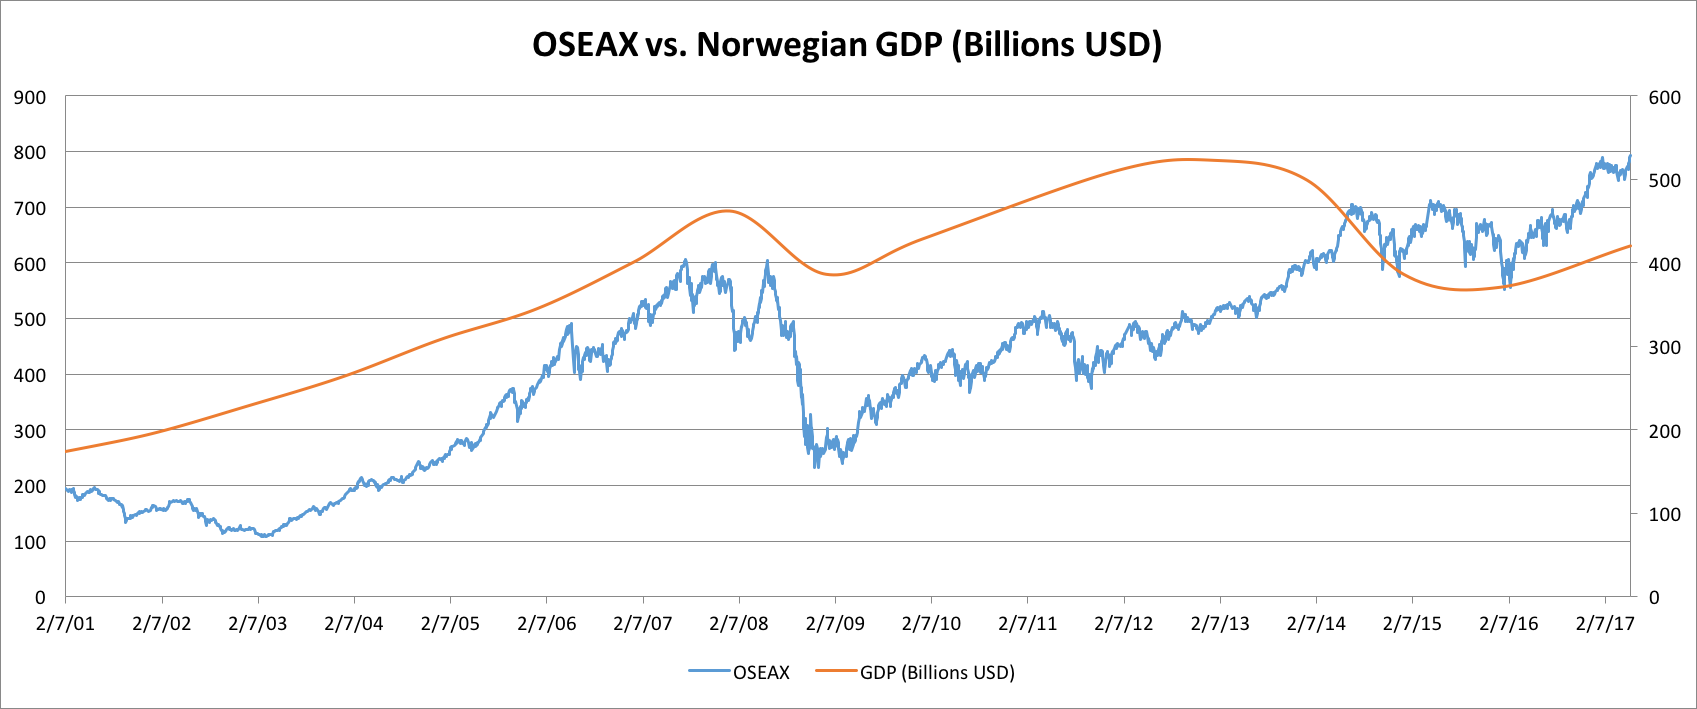 OSEAX v GDP.png